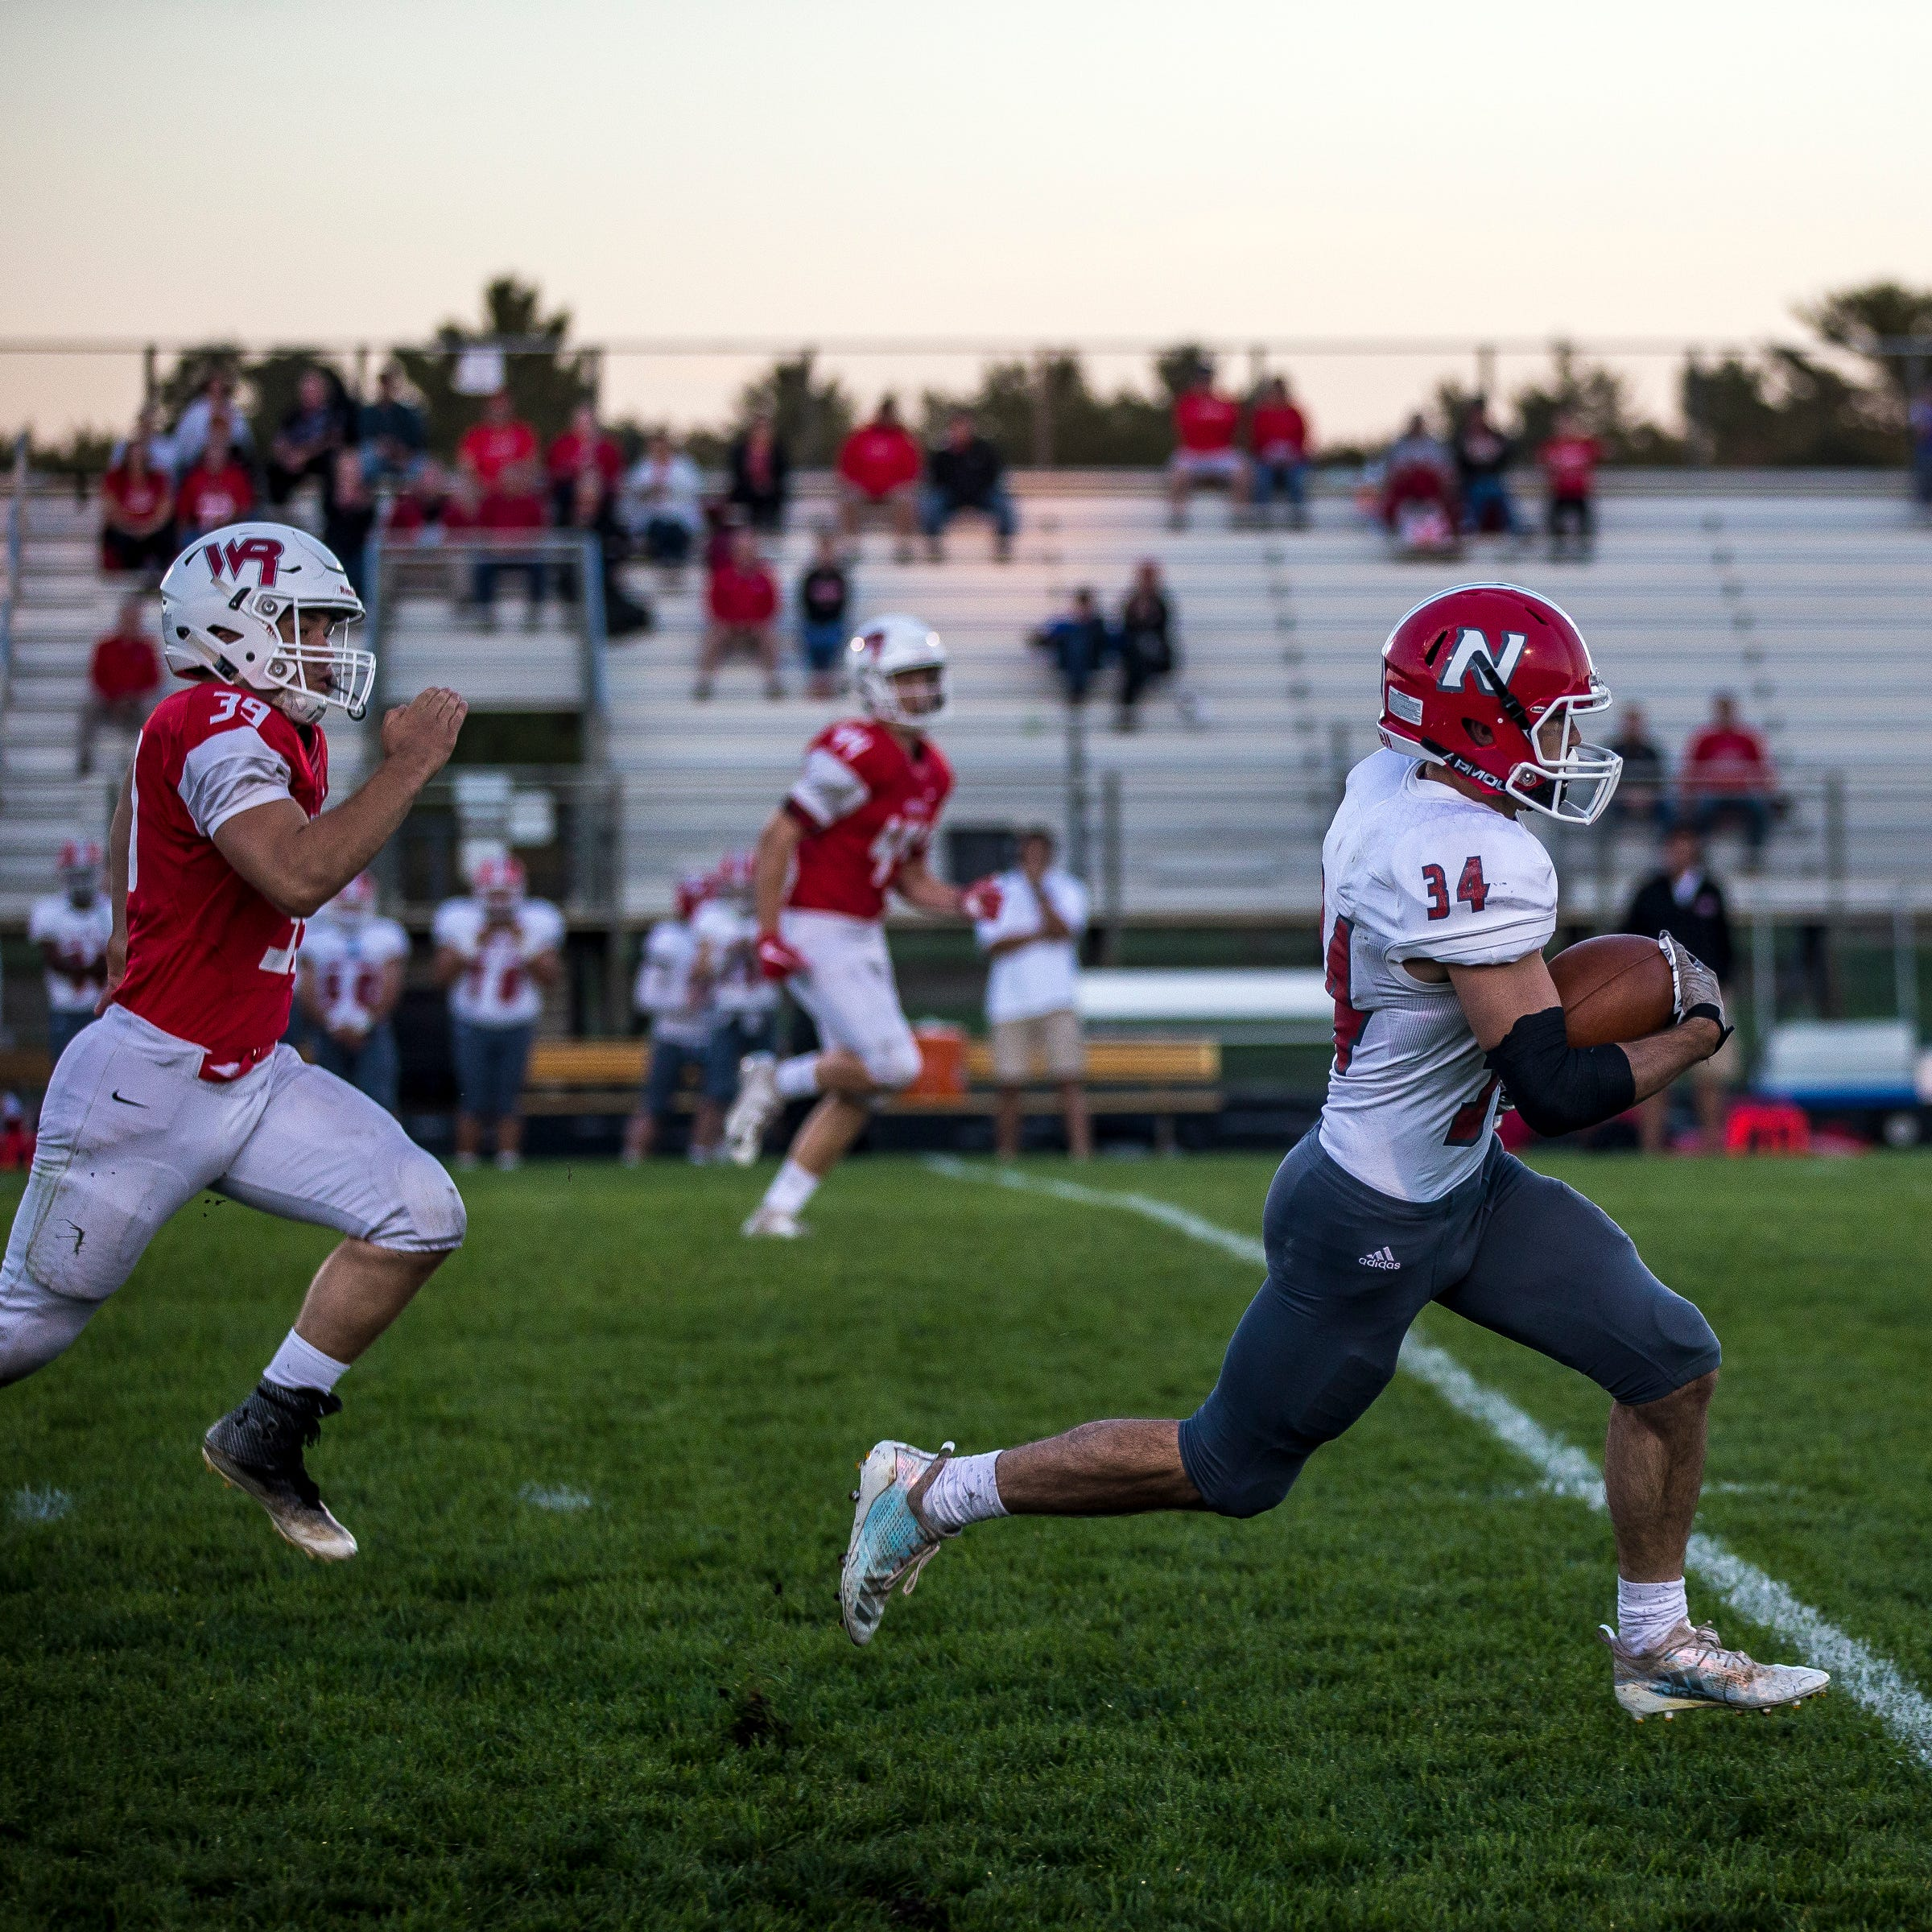 High school football: No. 8 ranked Neenah proves too much for Wisconsin Rapids